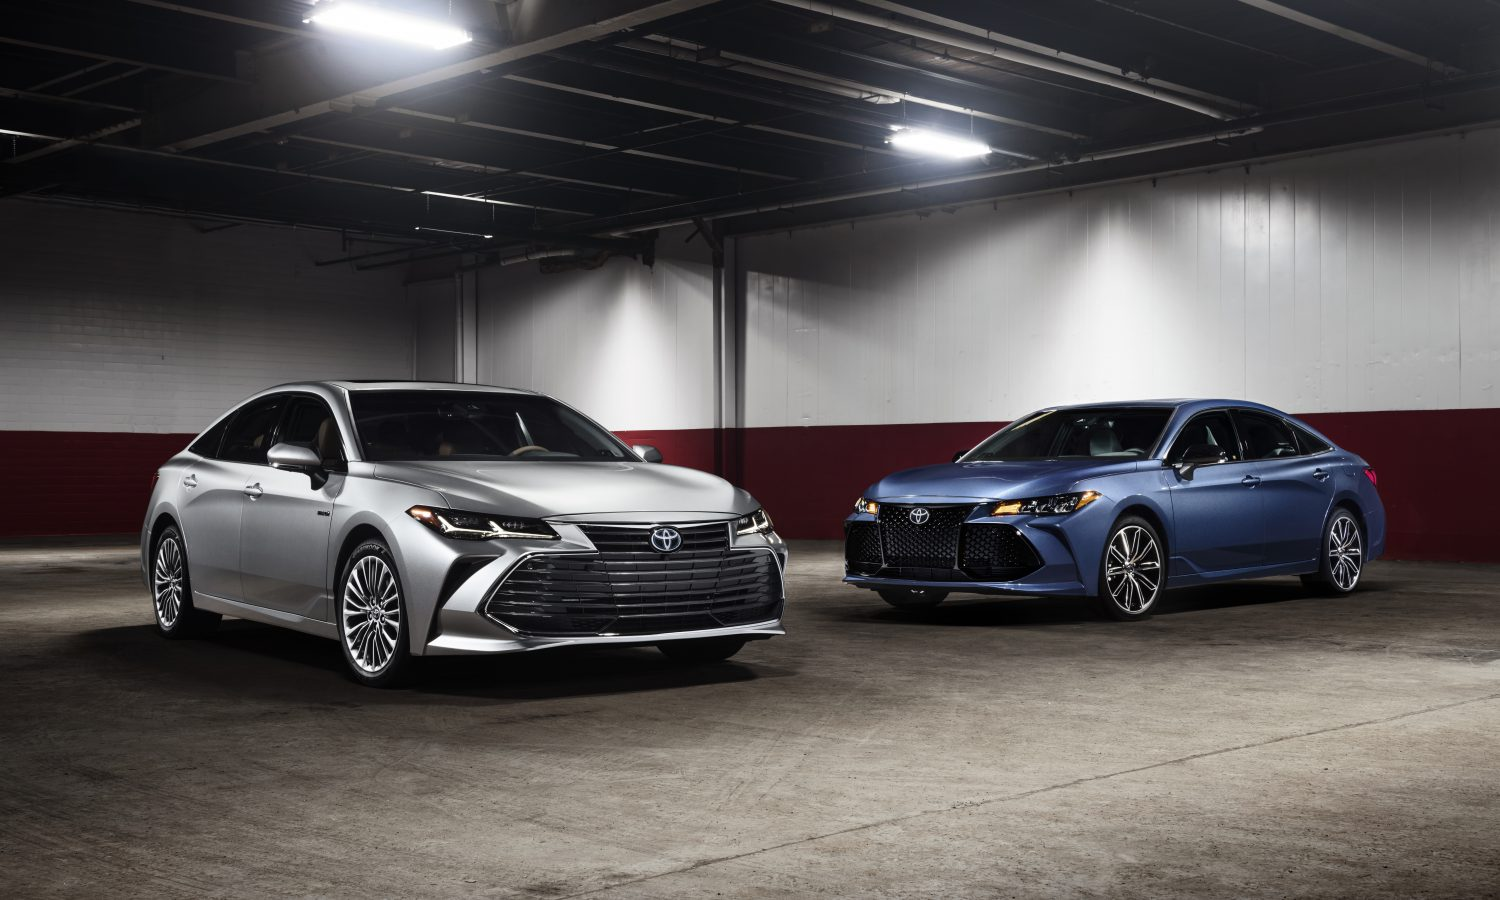 Attainable Premium, Actualized: All-New 2019 Toyota Avalon Beams Effortless Sophistication, Style, and Exhilaration at the 2018 North American International Auto Show